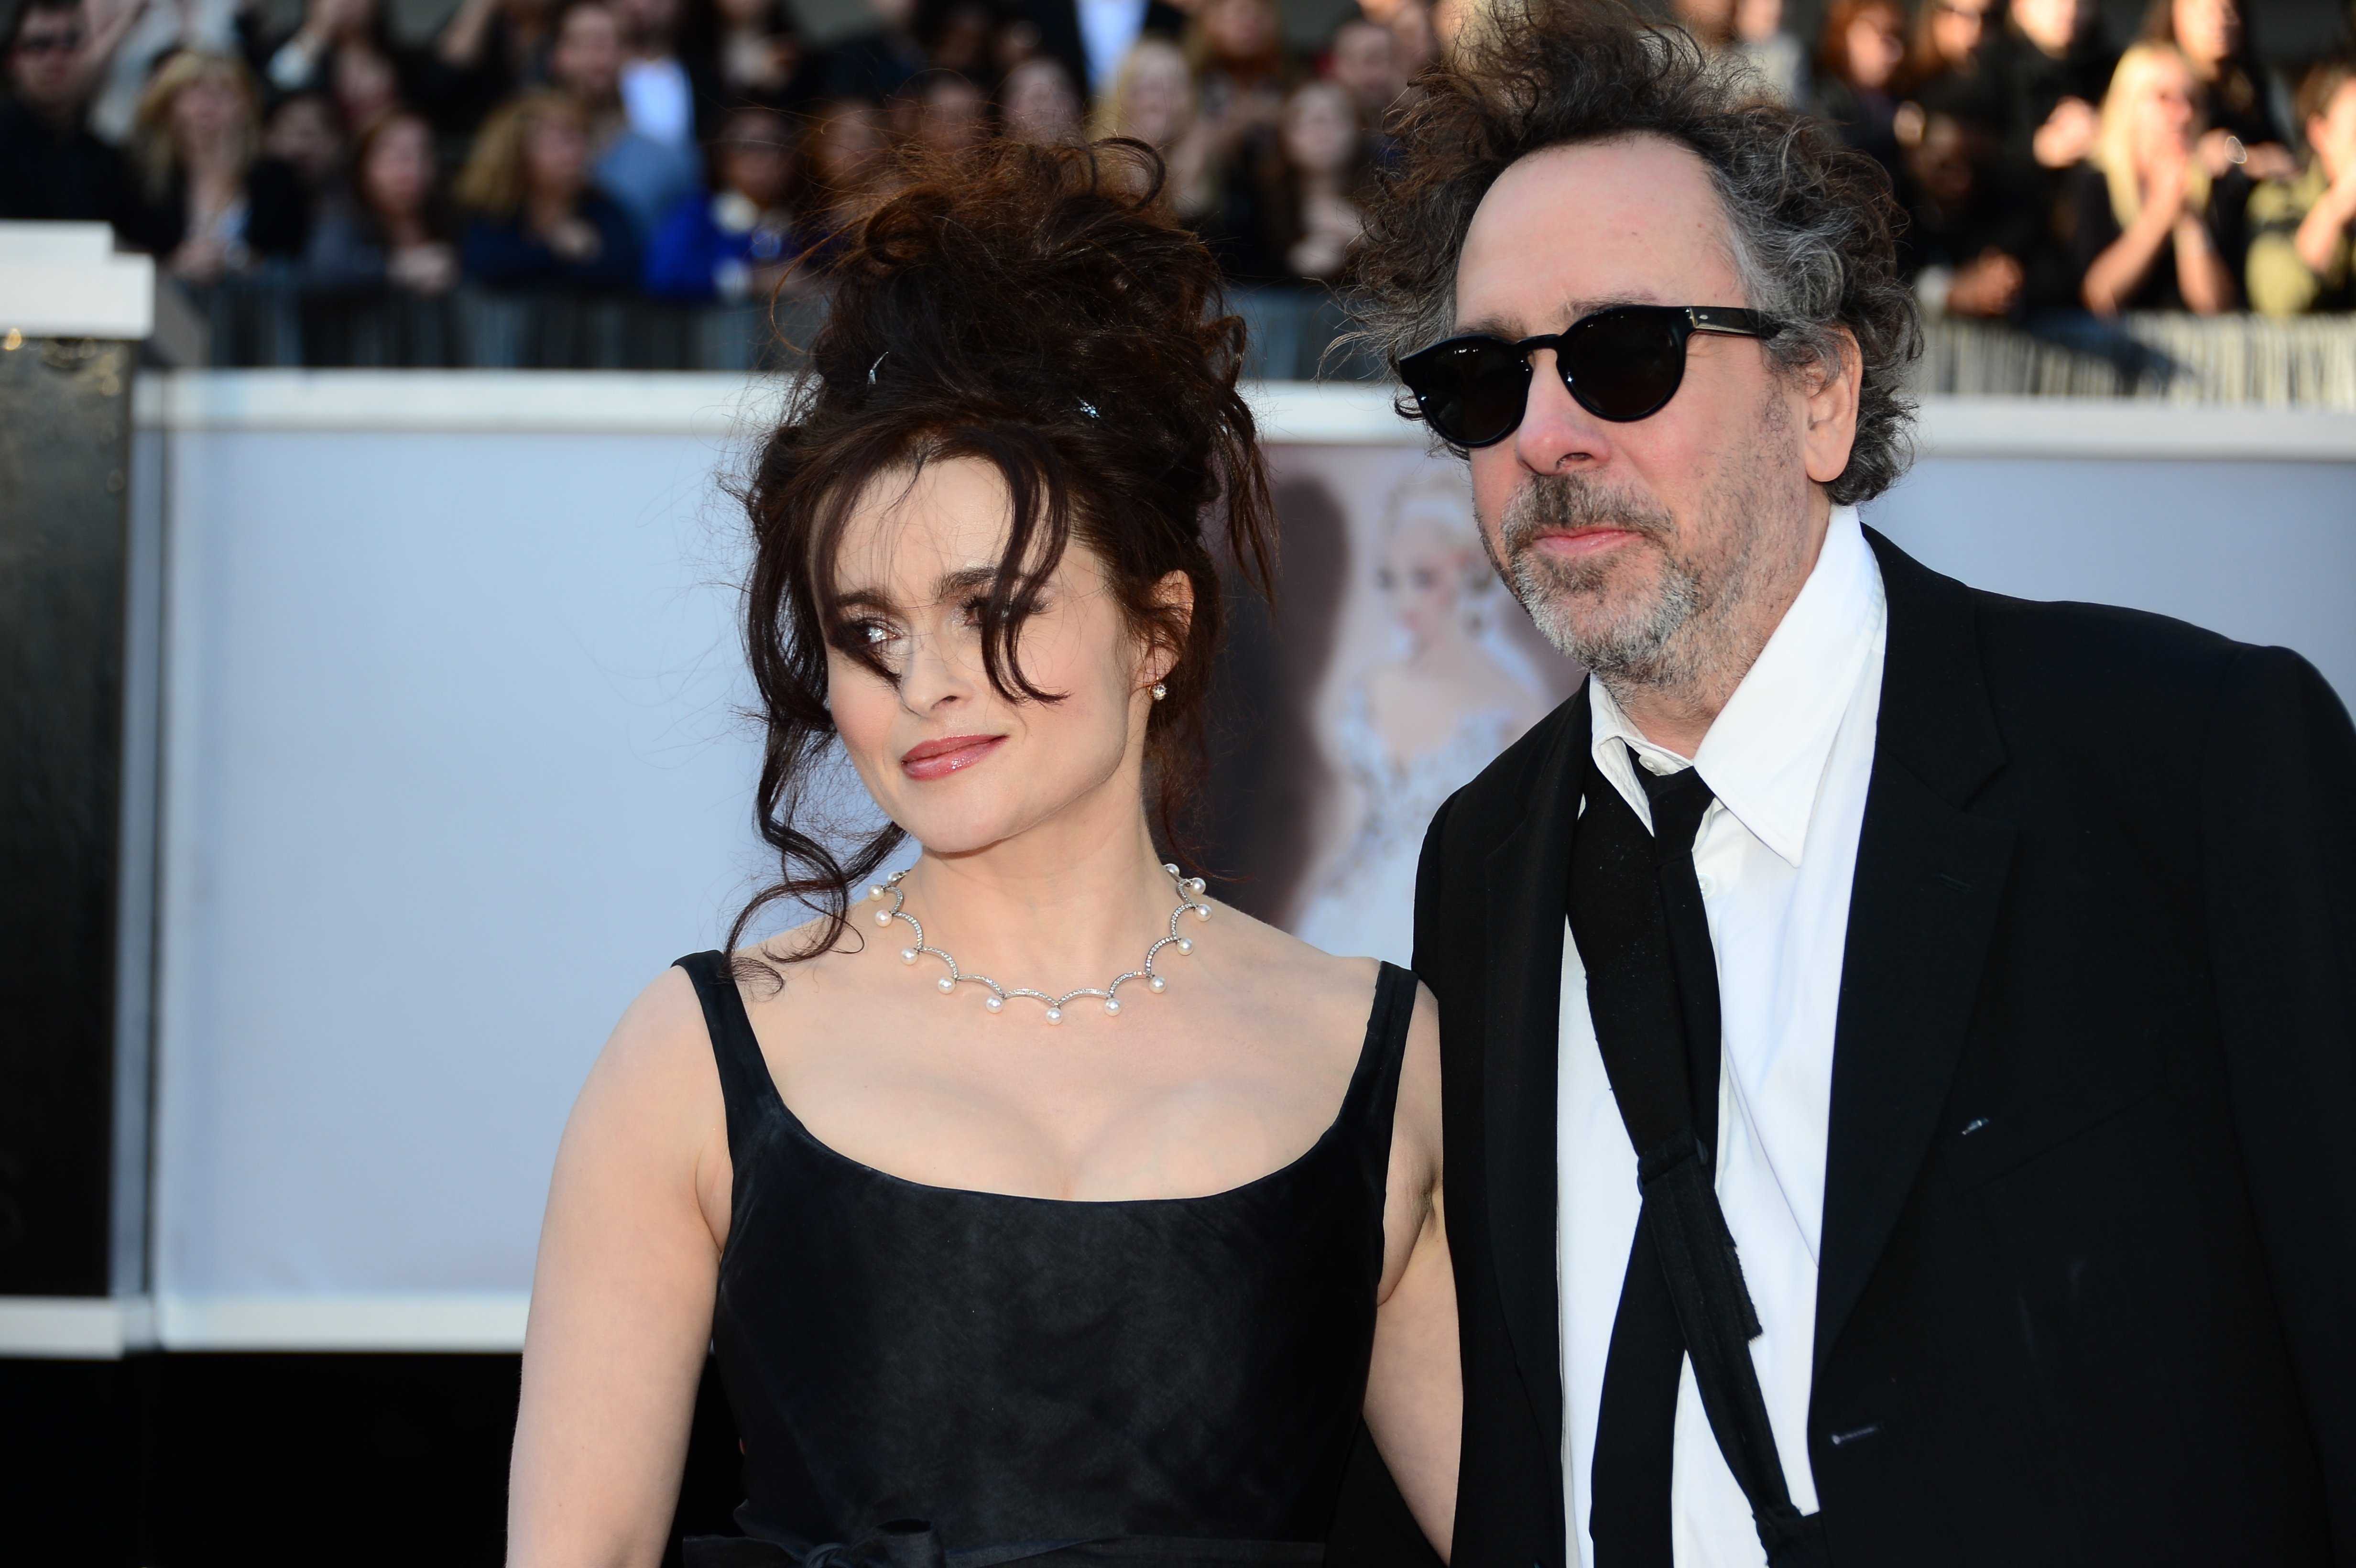 Actress Helena Bonham Carter and Director Tim Burton arrive on the red carpet for the 85th Annual Academy Awards on February 24, 2013 in Hollywood, California. AFP PHOTO/FREDERIC J. BROWN (Photo credit should read FREDERIC J. BROWN/AFP/Getty Images)